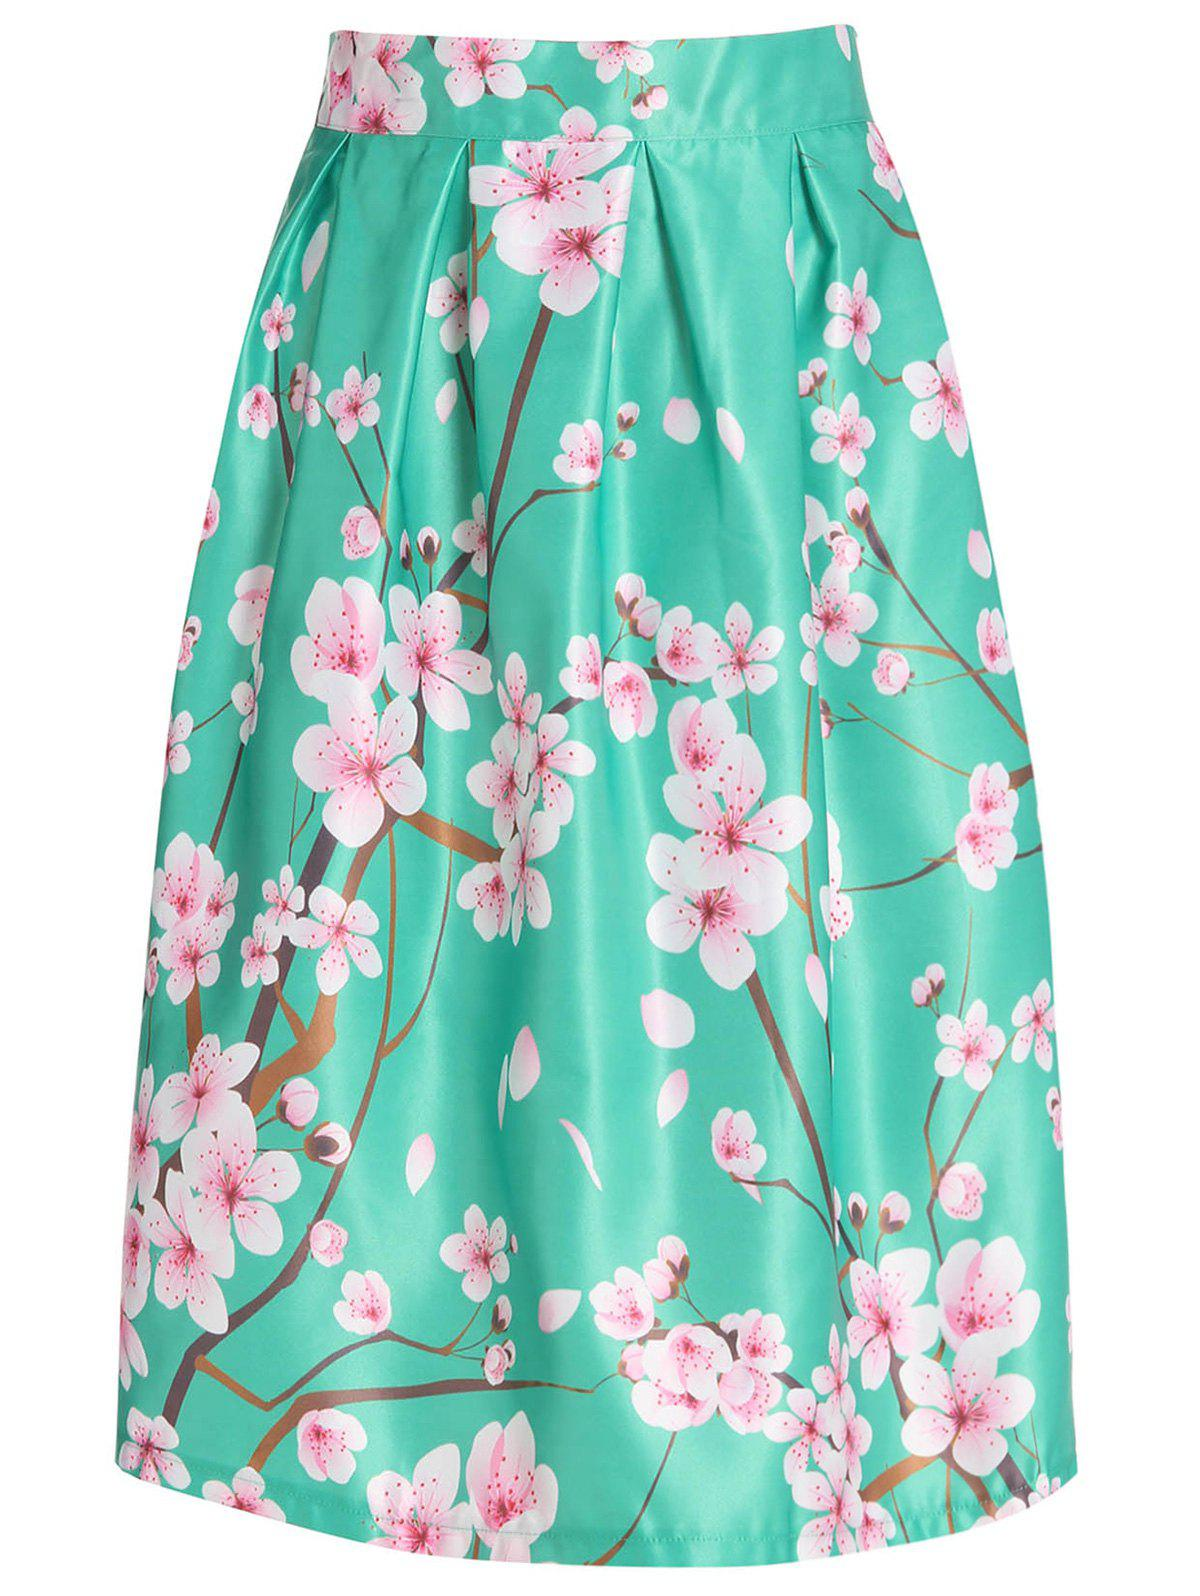 Women's Chic Floral Print High Waist A-Line Skirt -  GREEN